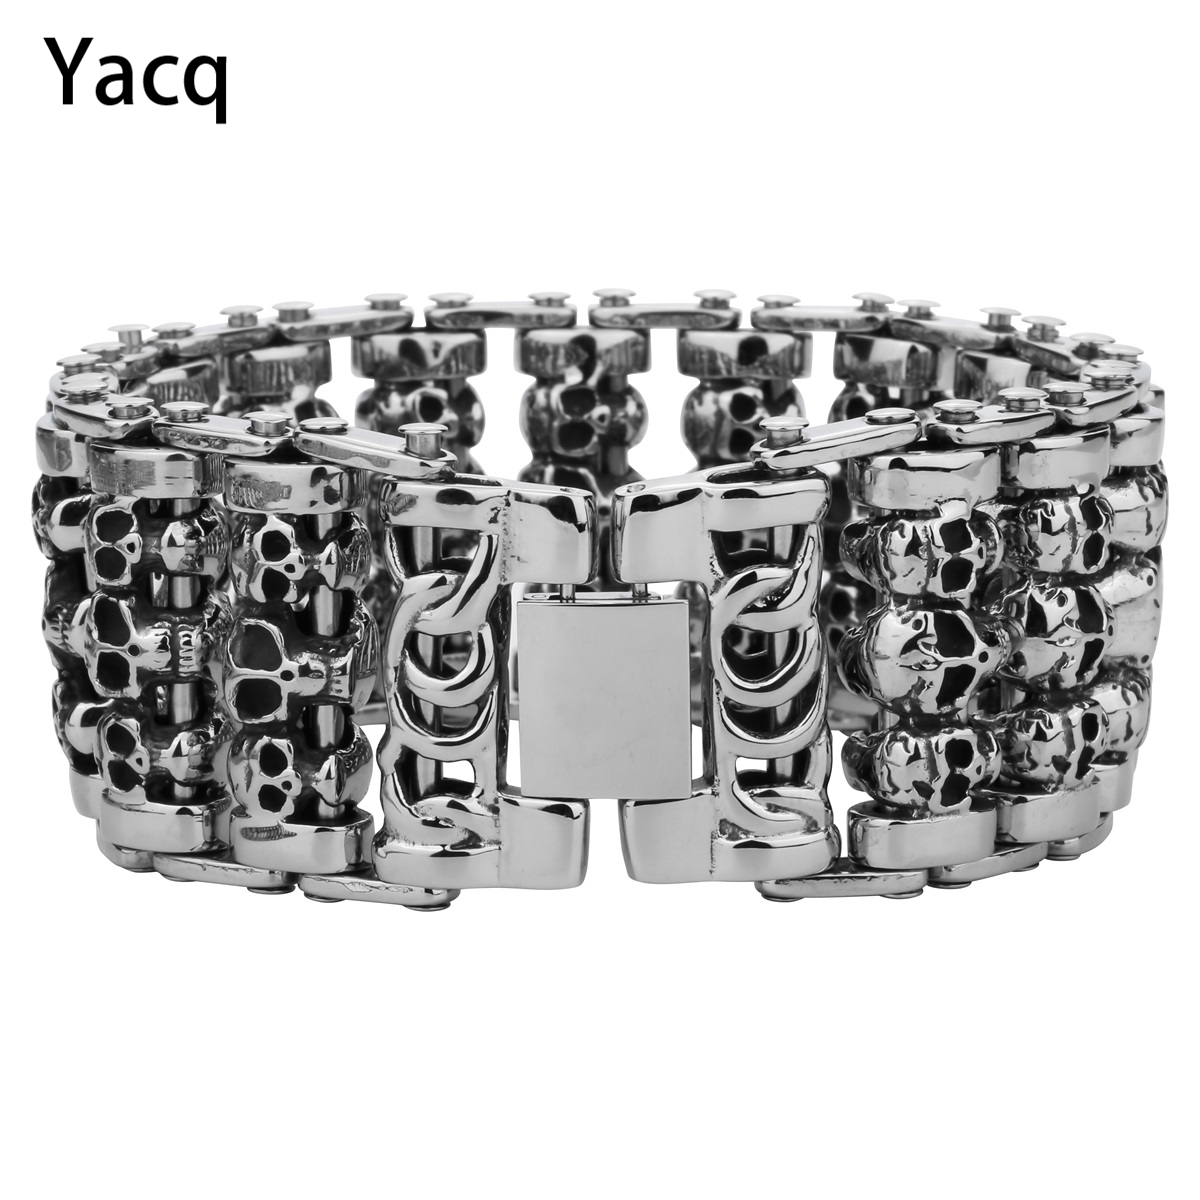 Mens Skull Cuff Bracelet Stainless Steel Biker Heavy Chain Jewelry Fathers Day Gifts for Dad Him Boyfriend dropshipping 9 D107